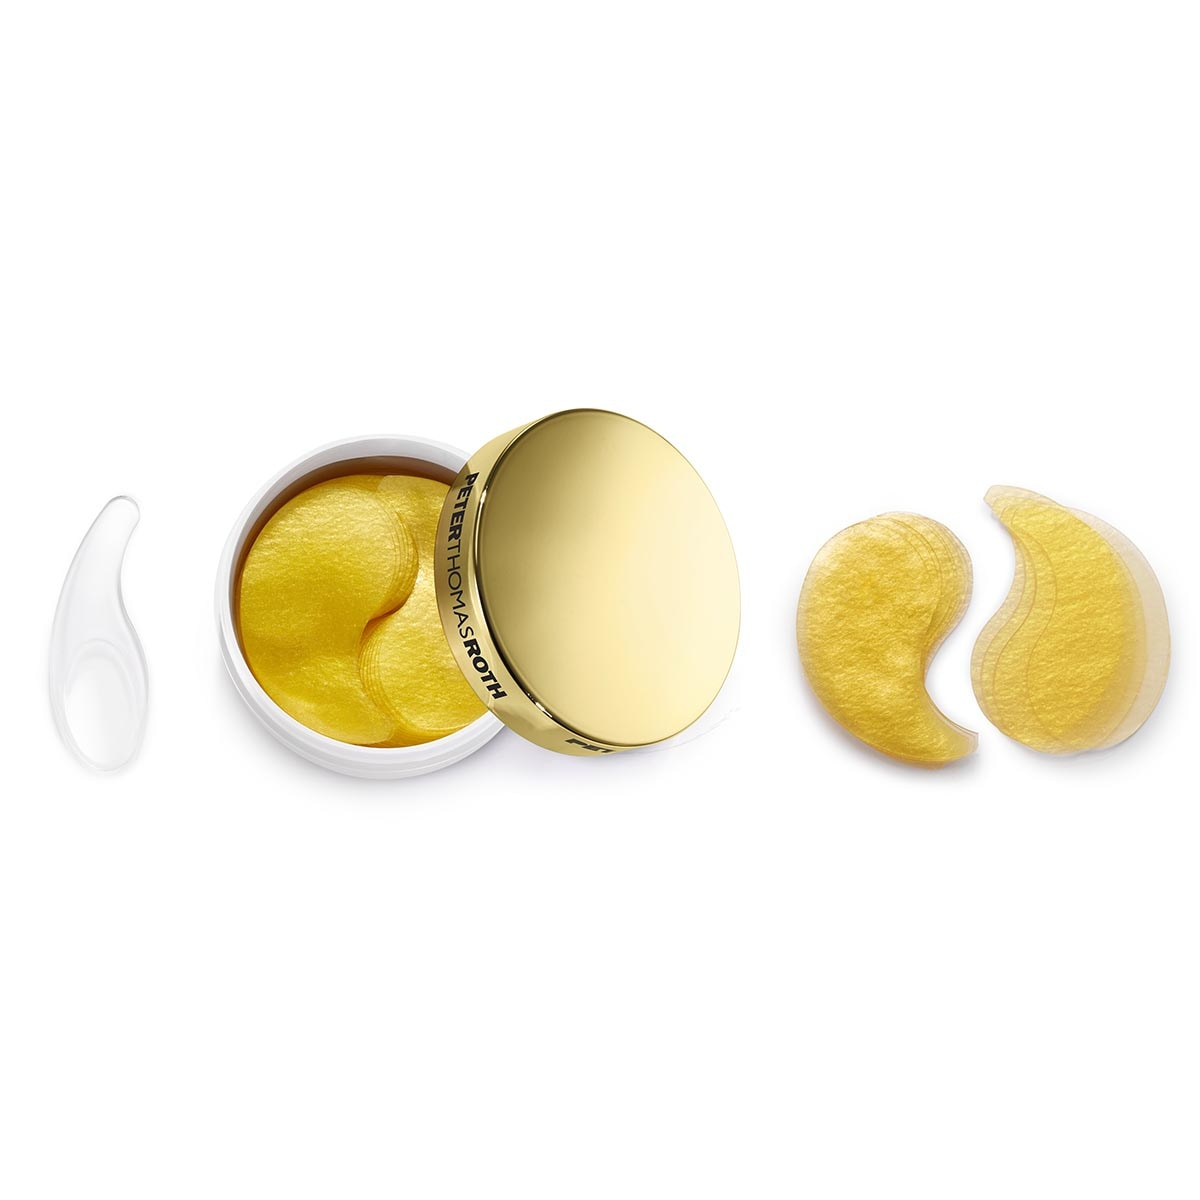 24K GOLD HYDRA-GEL EYE PATCHES